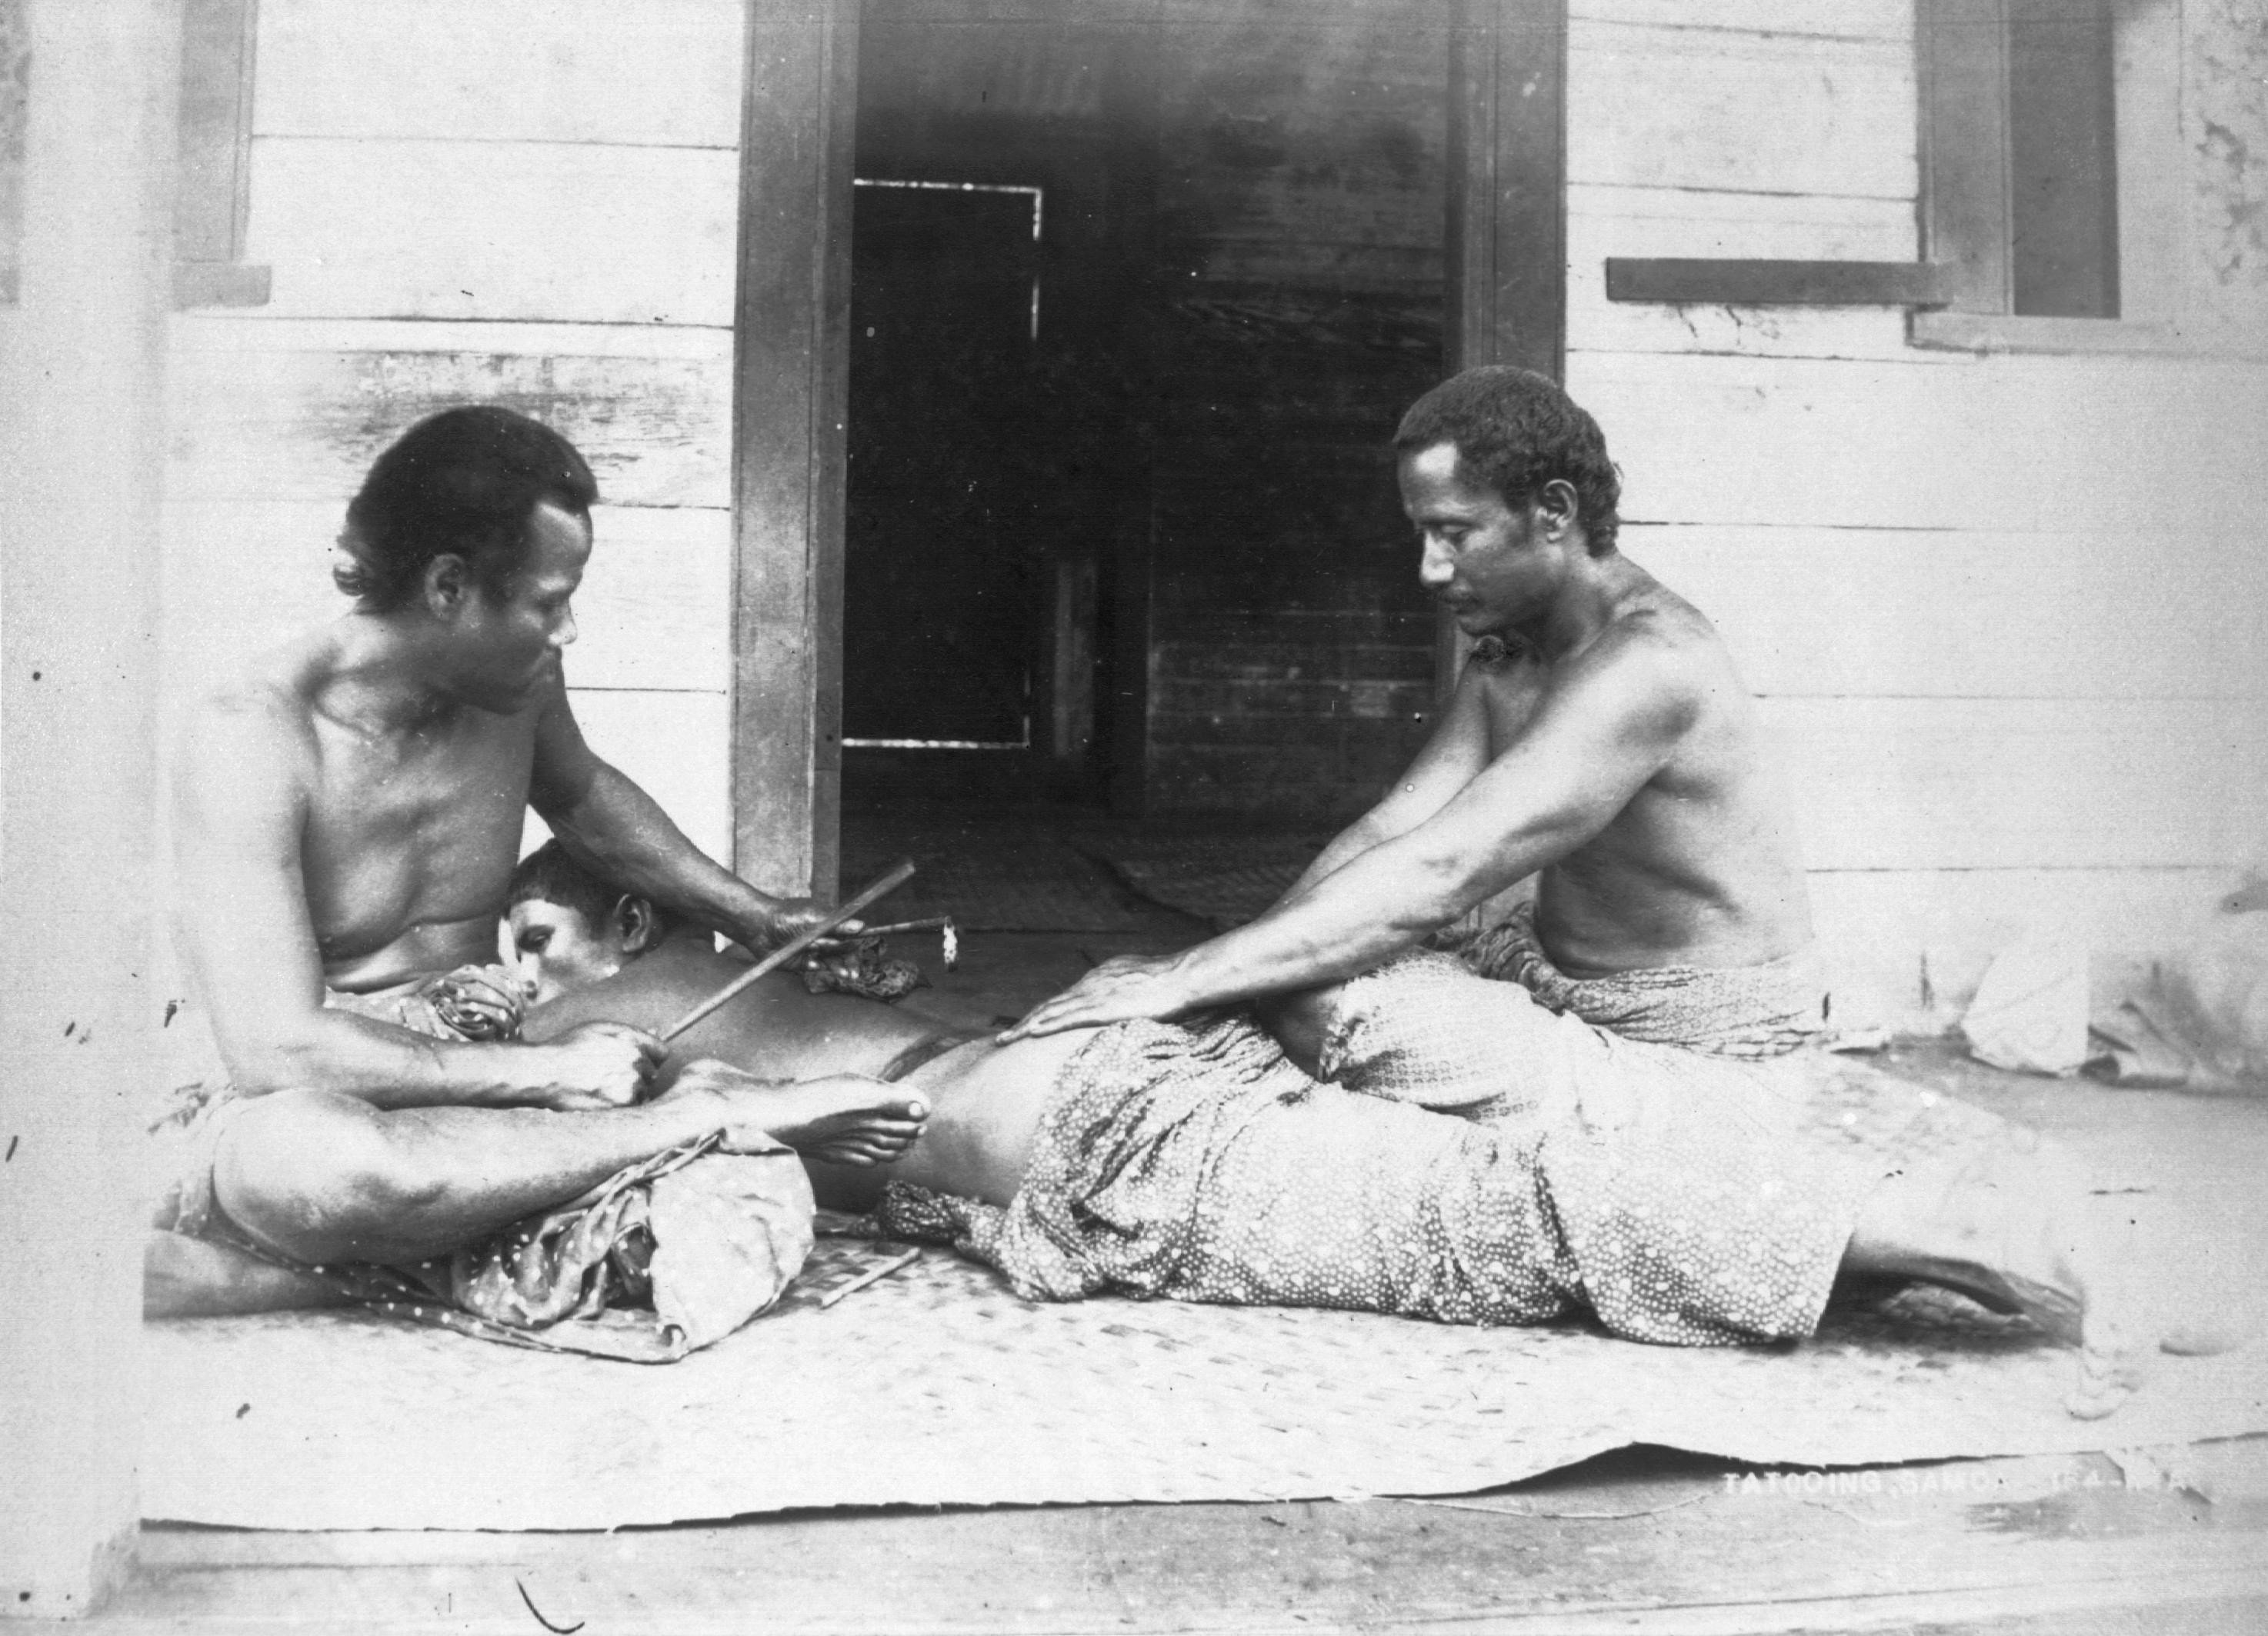 Traditional tatau session